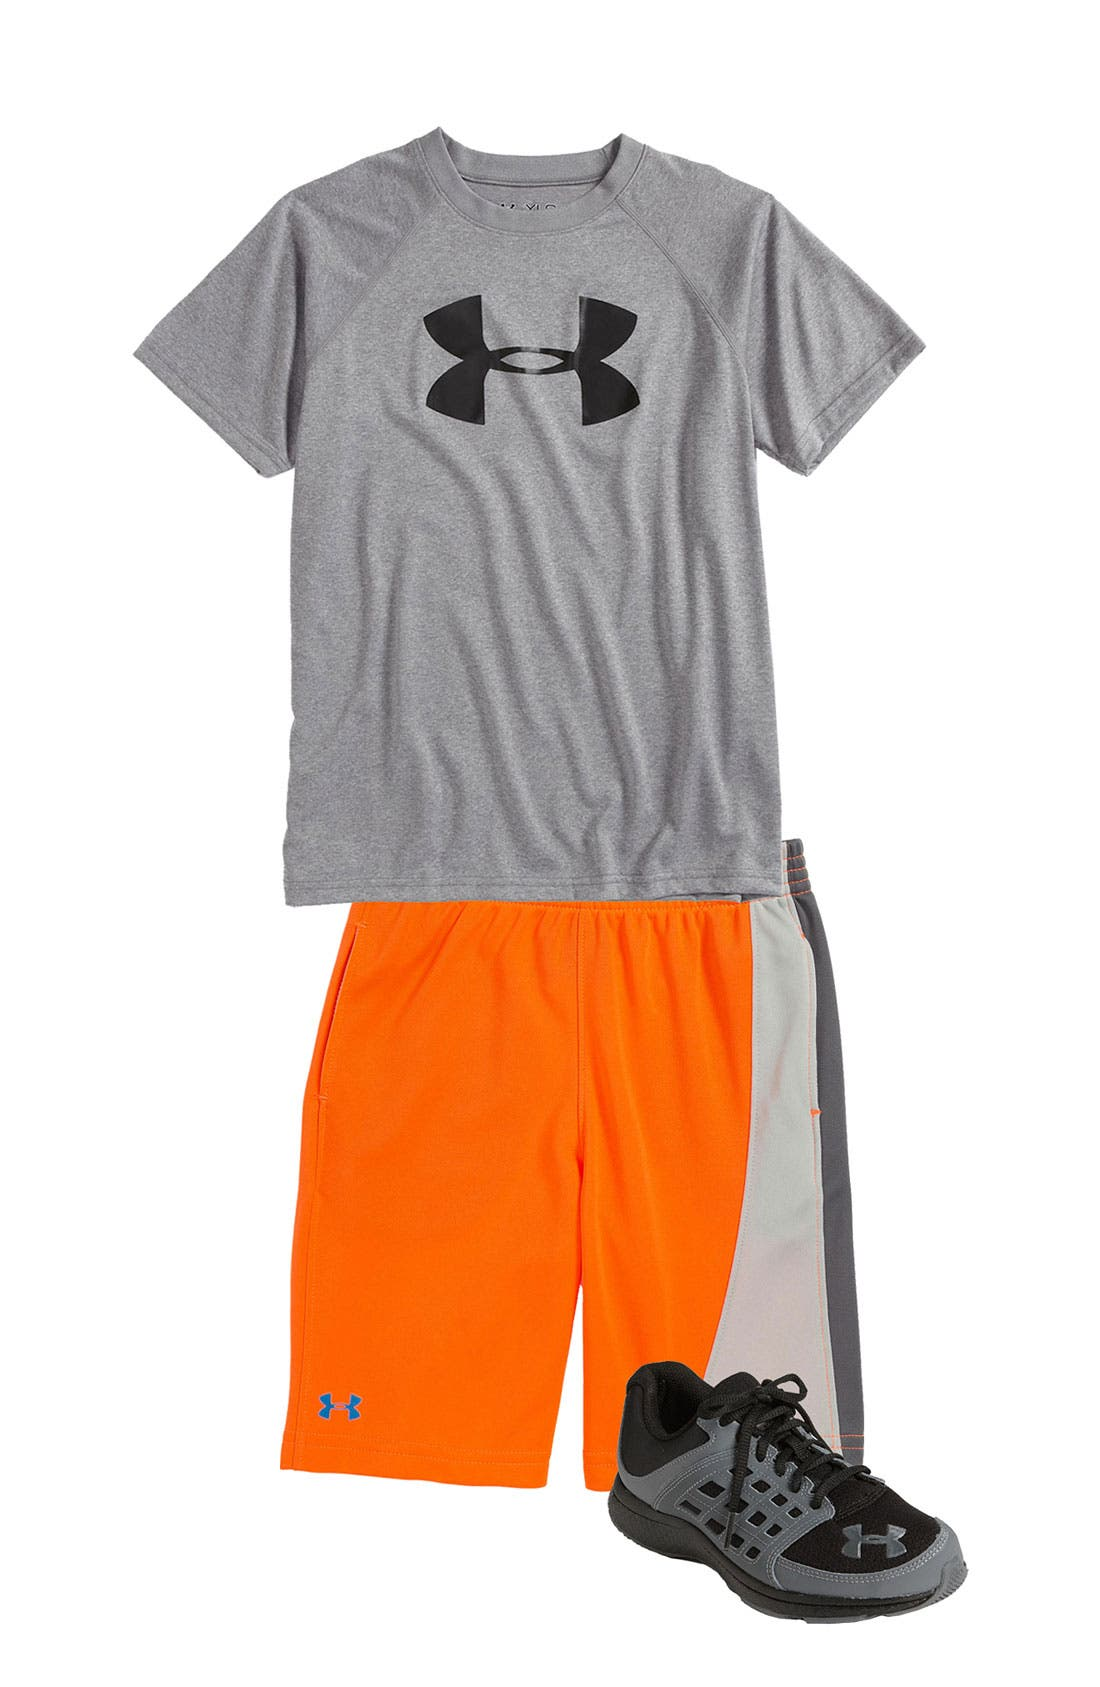 Main Image - Under Armour T-Shirt, Shorts & Sneaker (Little Boys)